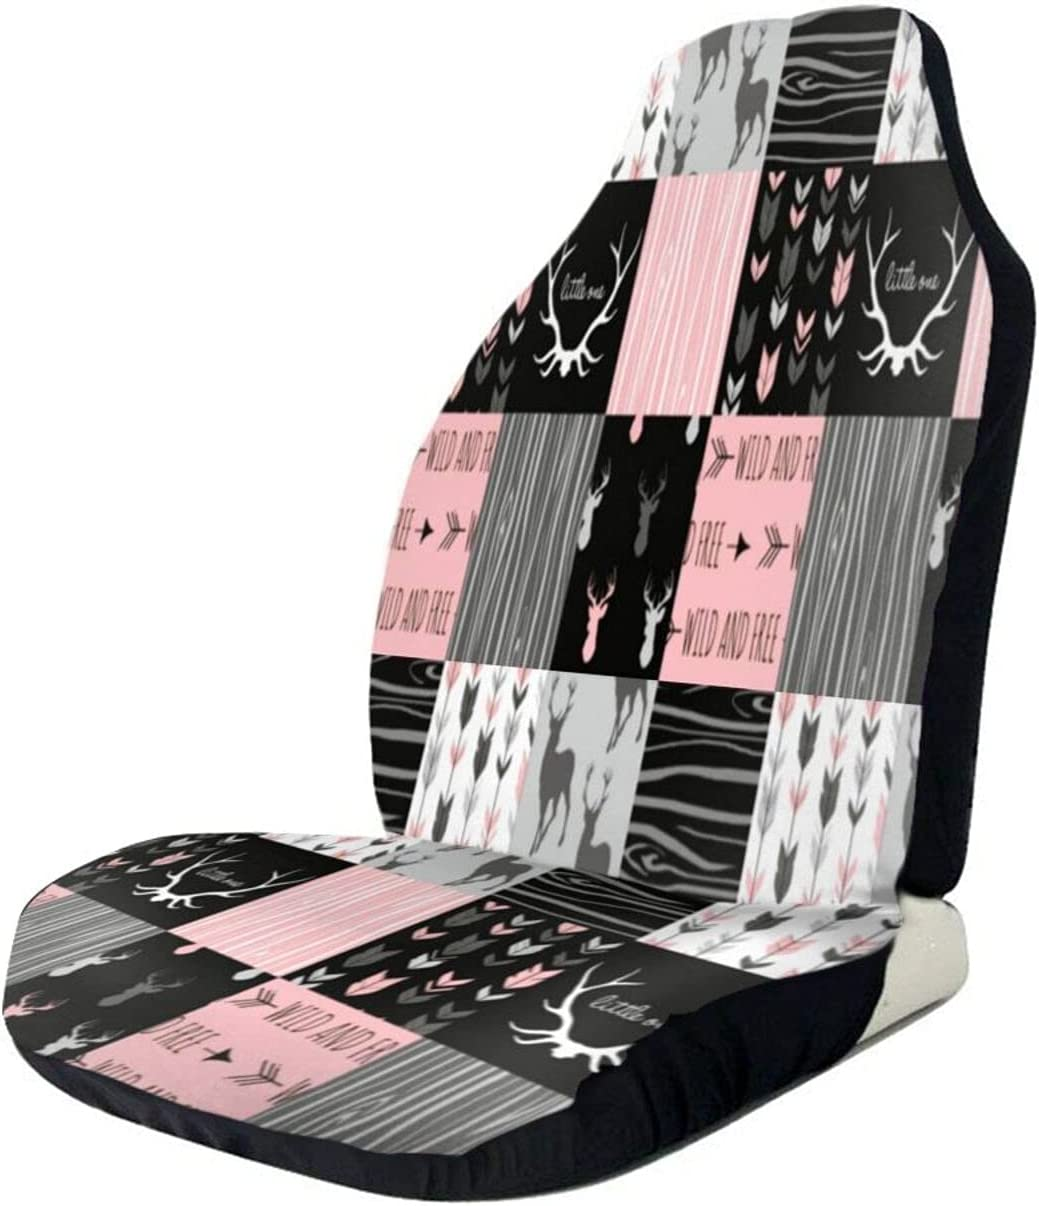 Rustic Bear Deer Patchwork Pink New Free Shipping 1 San Antonio Mall Cover Au Seat Soft Nonslip Car